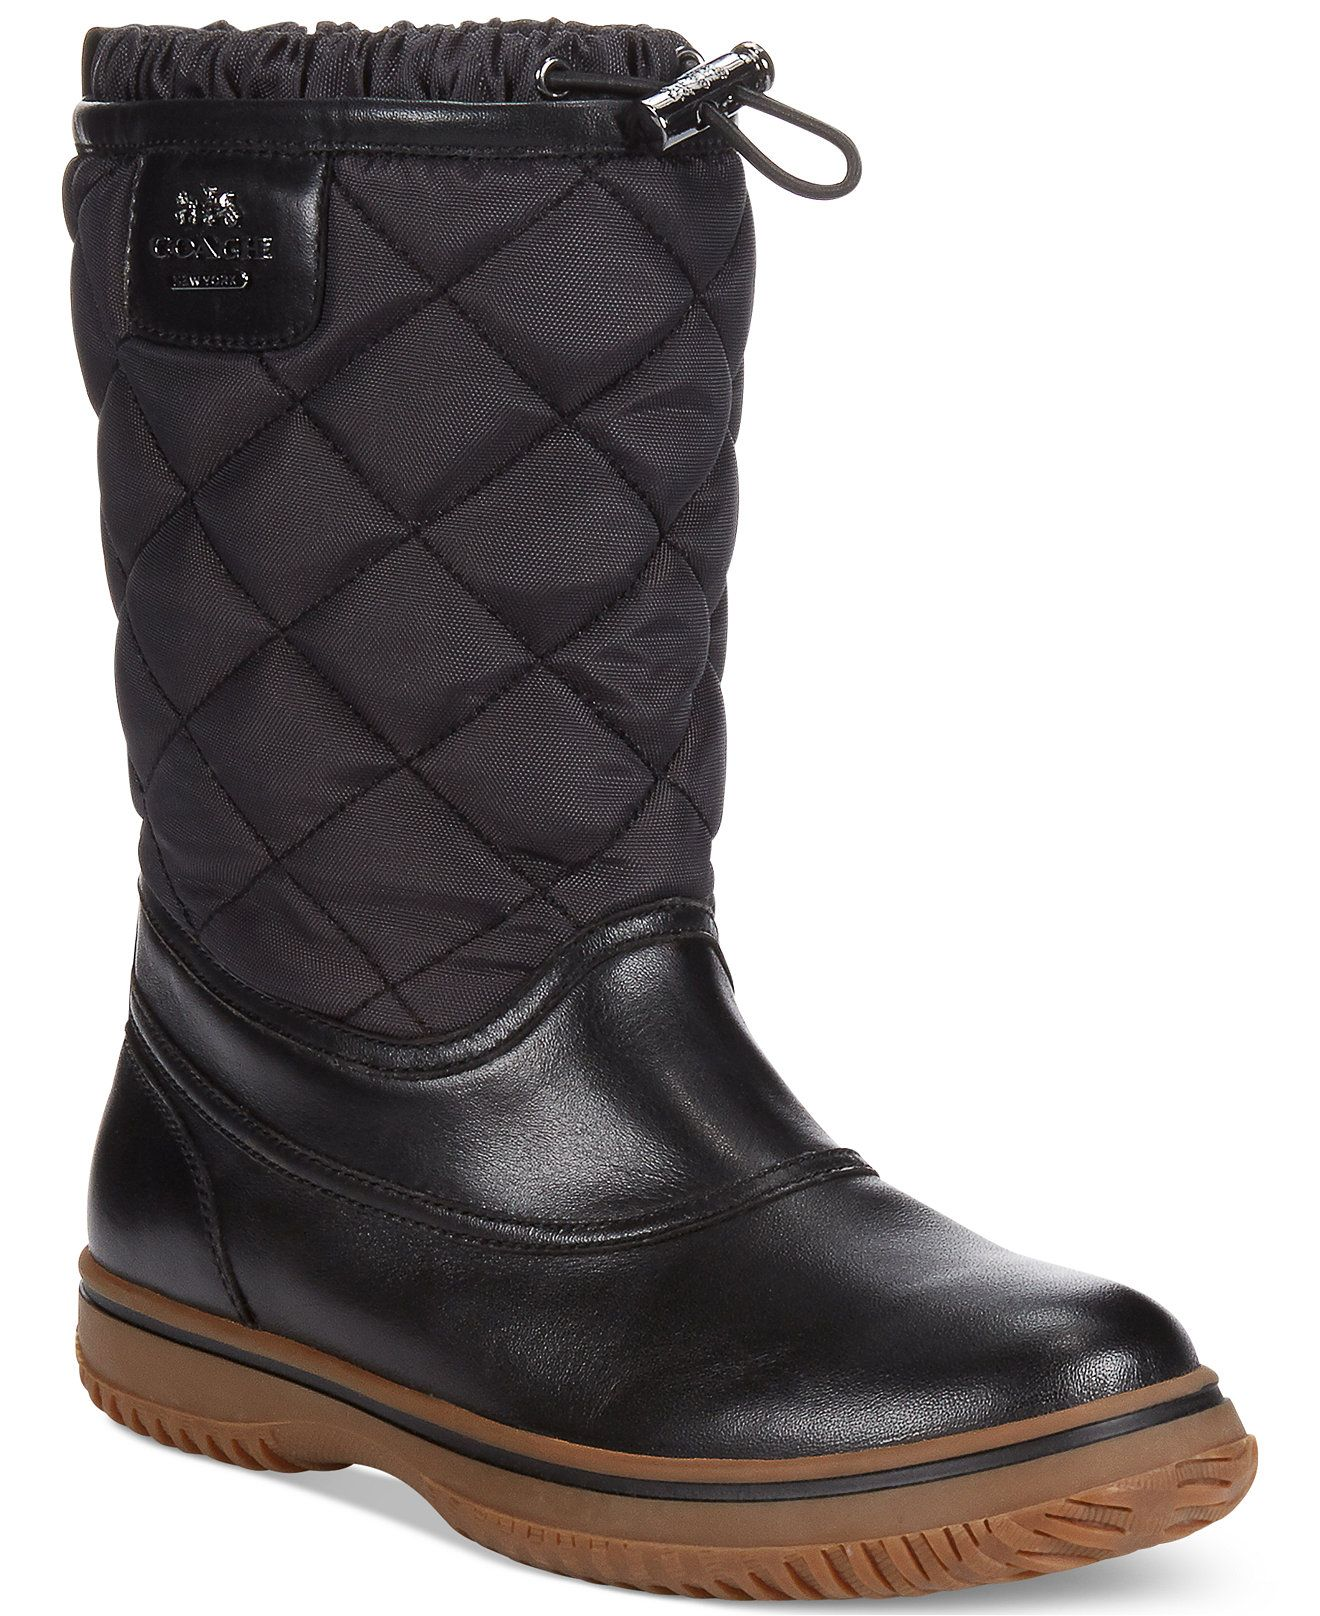 COACH SAMARA COLD WEATHER BOOTS - Winter & Rain Boots - Shoes ...